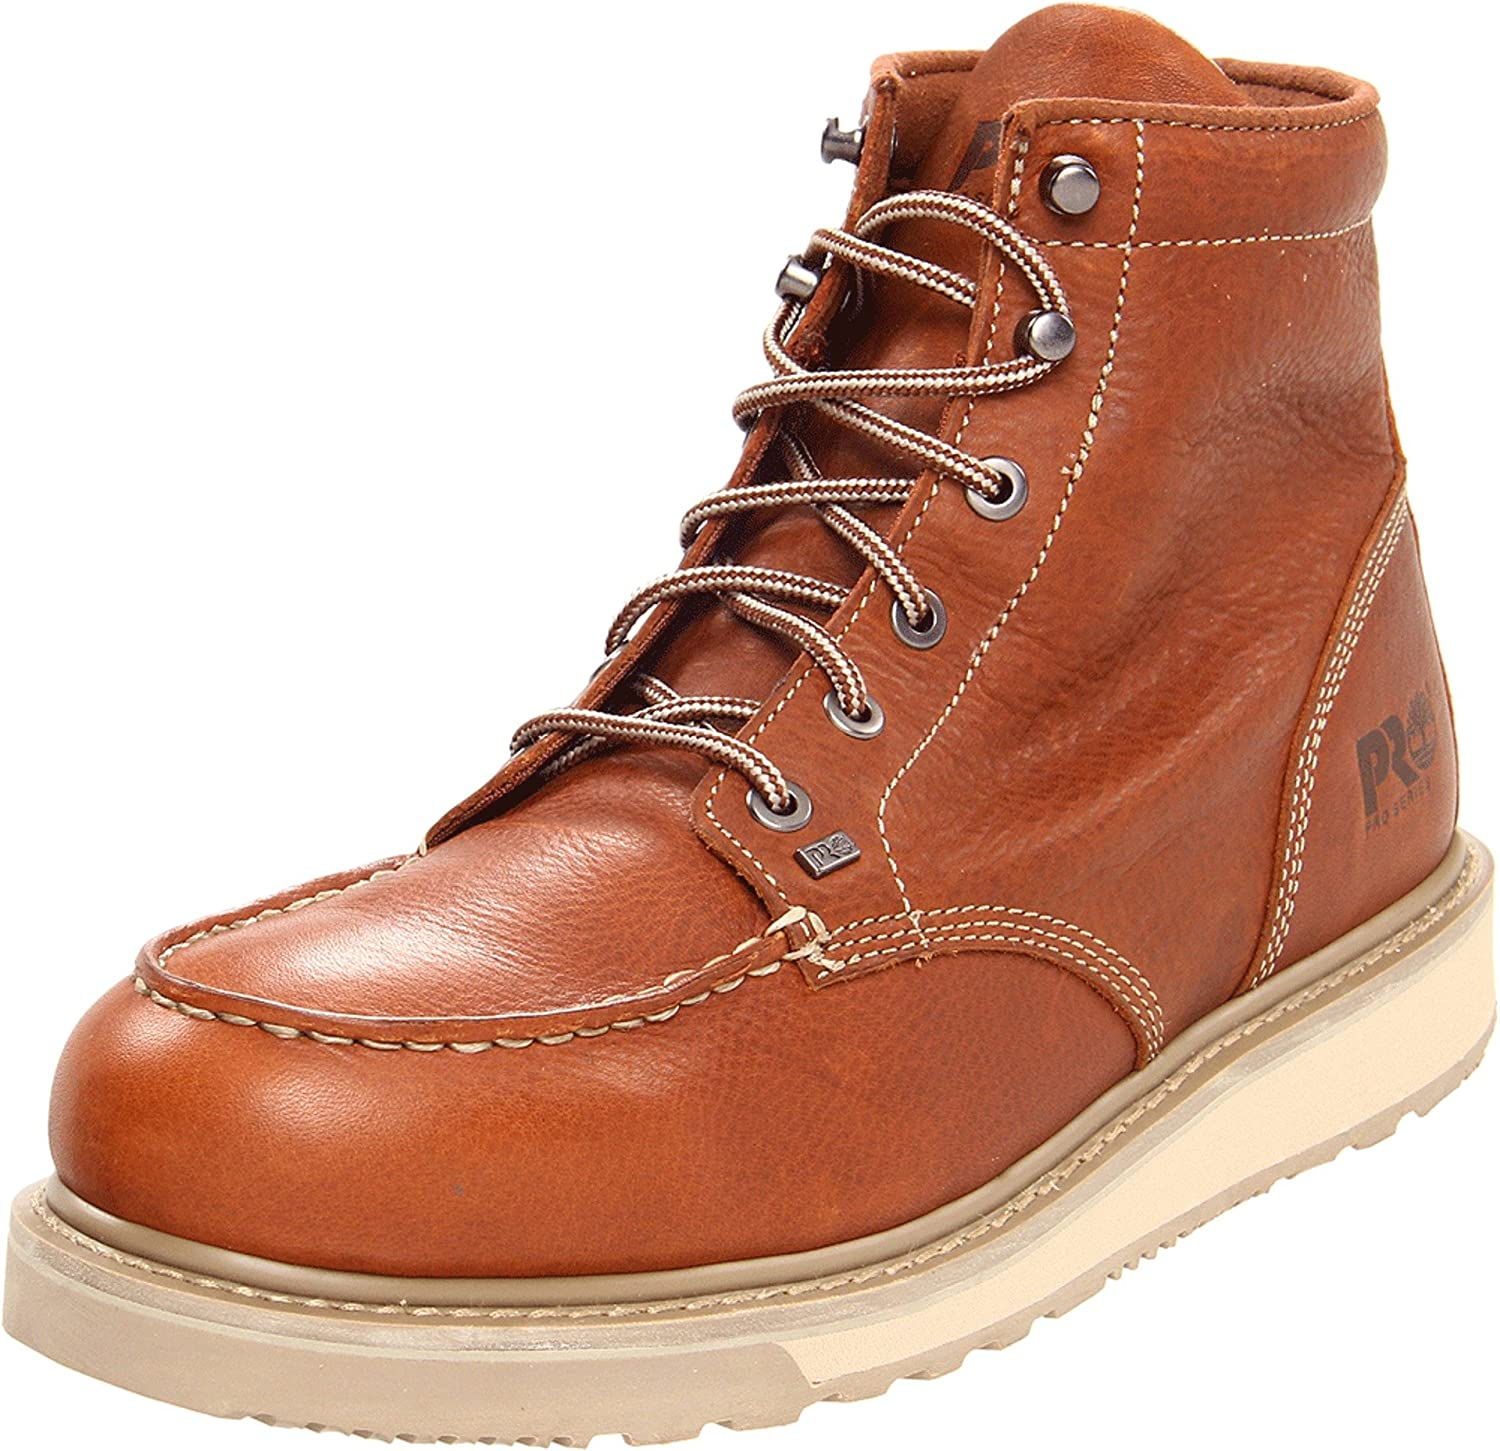 Amazon.com: Timberland PRO Men&39s Barstow Wedge Work Boot: Shoes